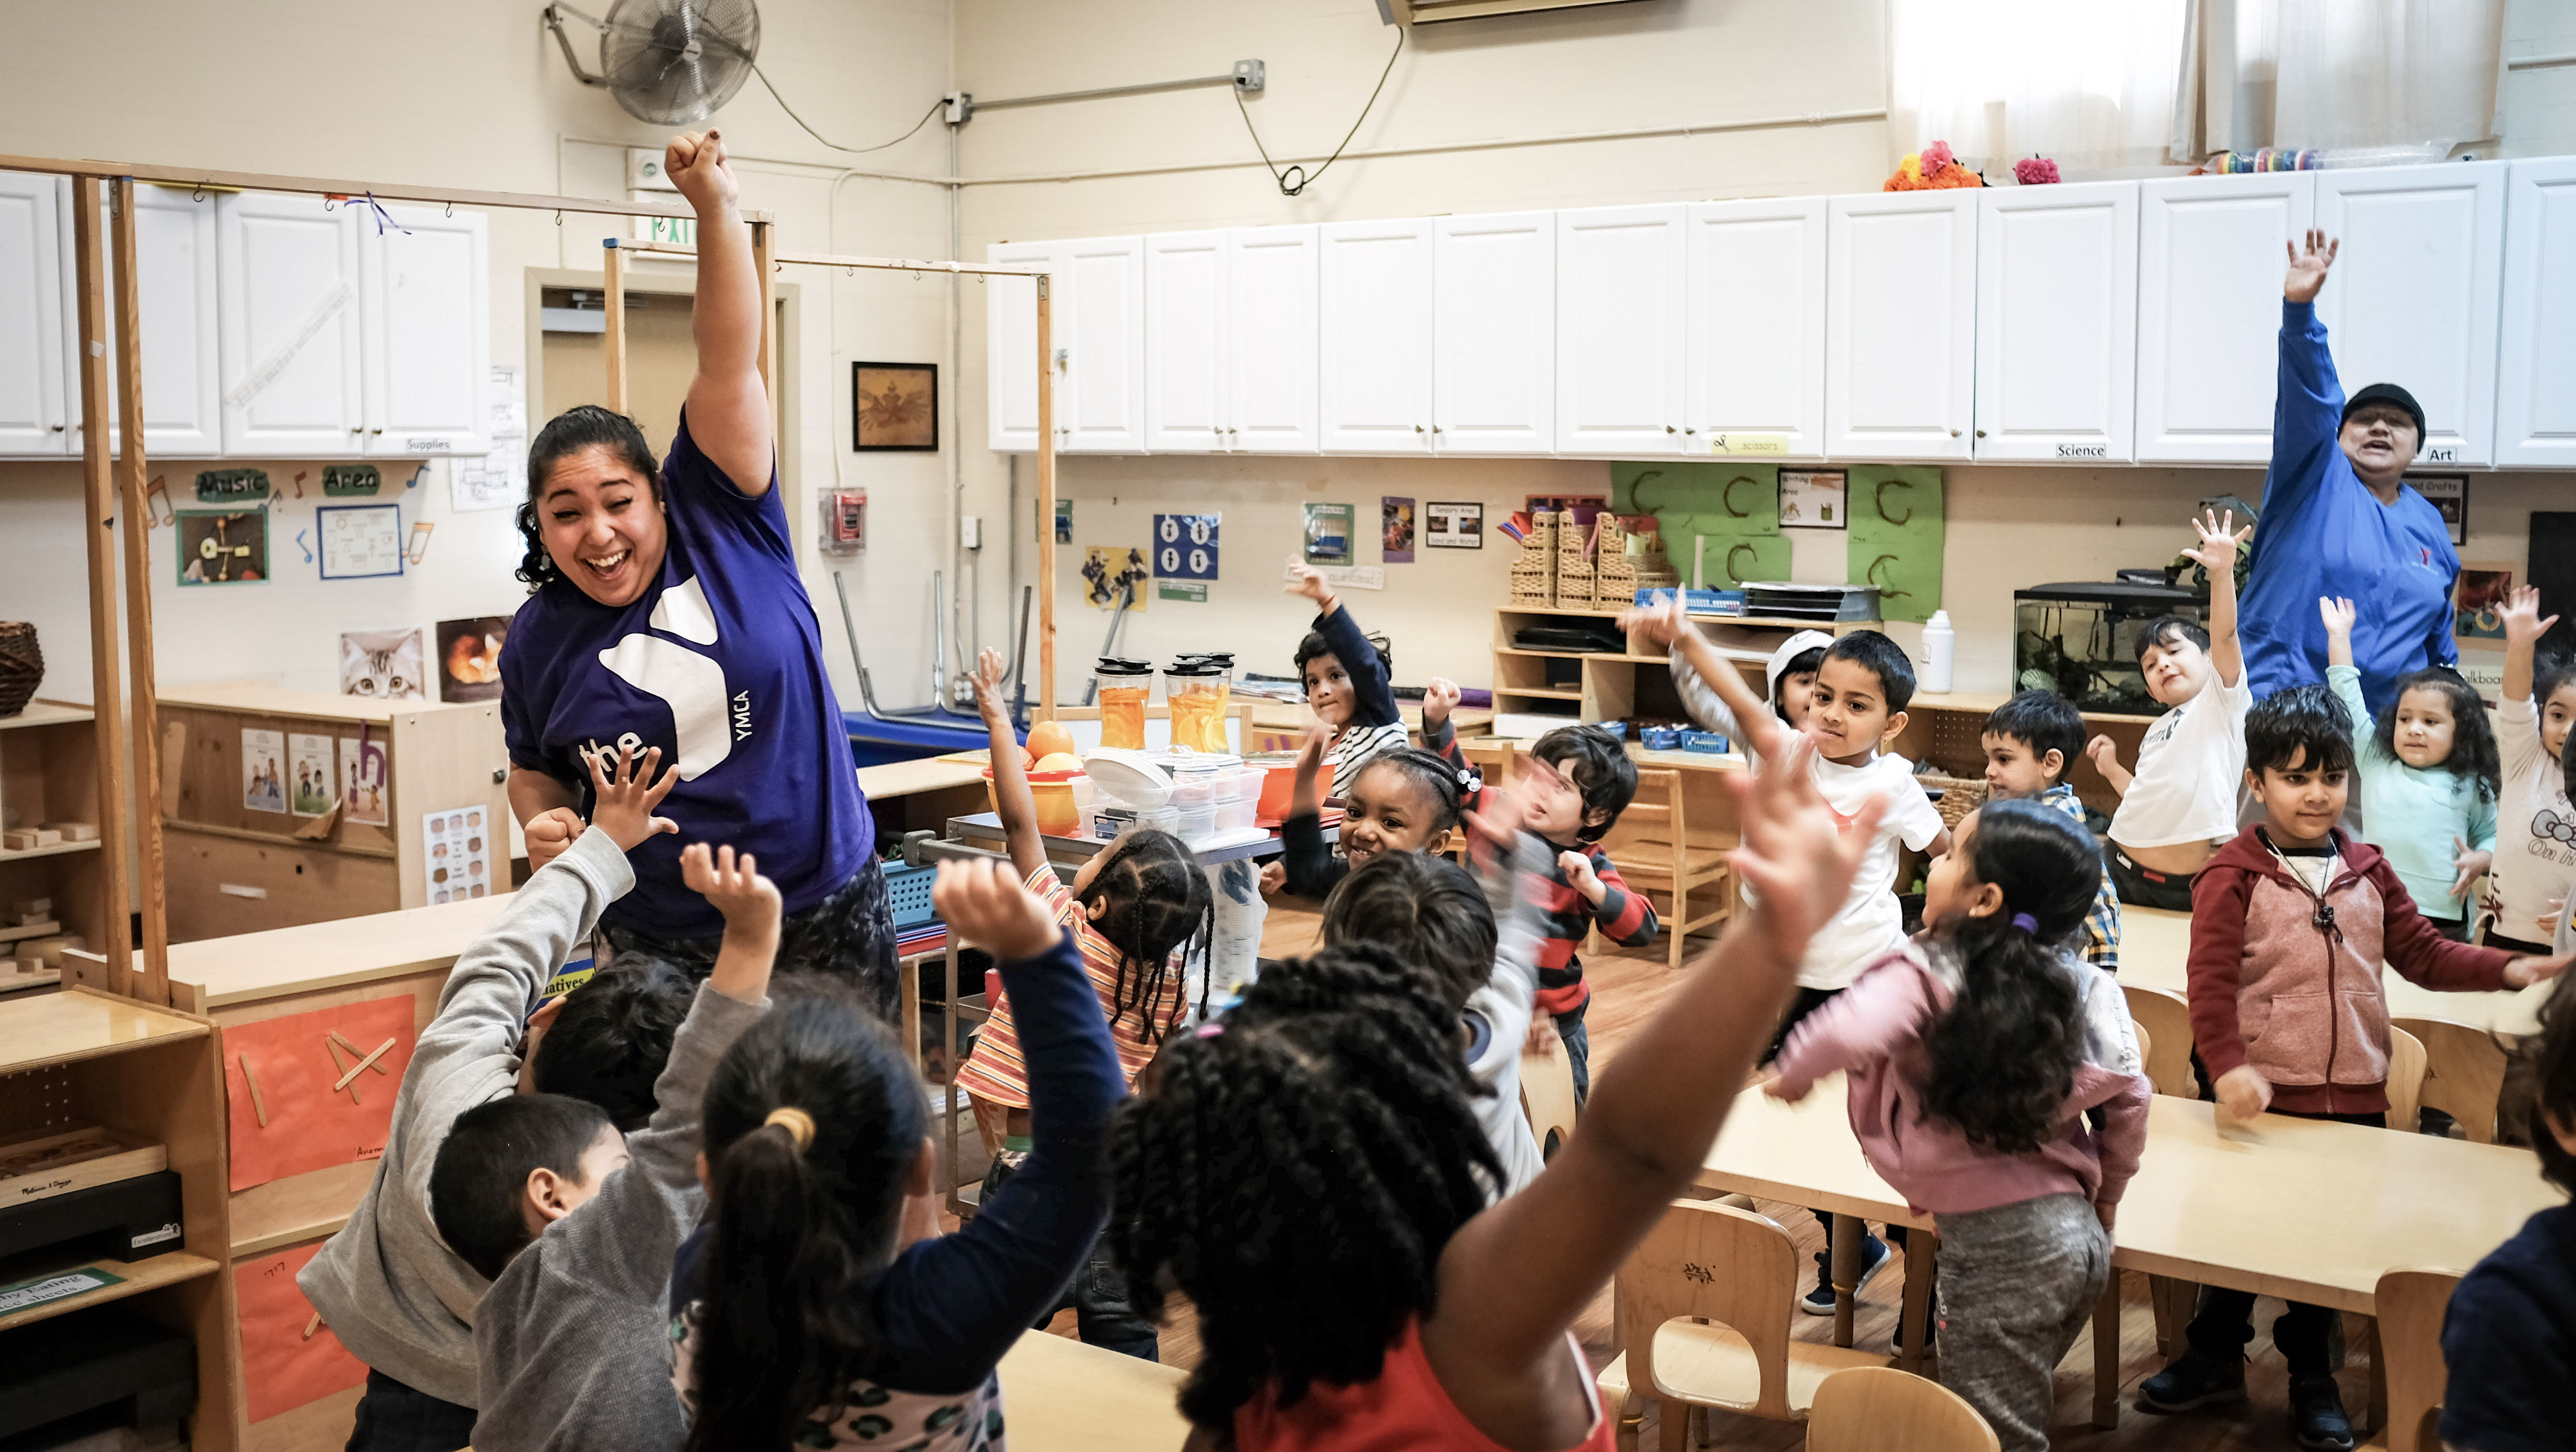 YMCA staff member engages preschoolers in physical activity